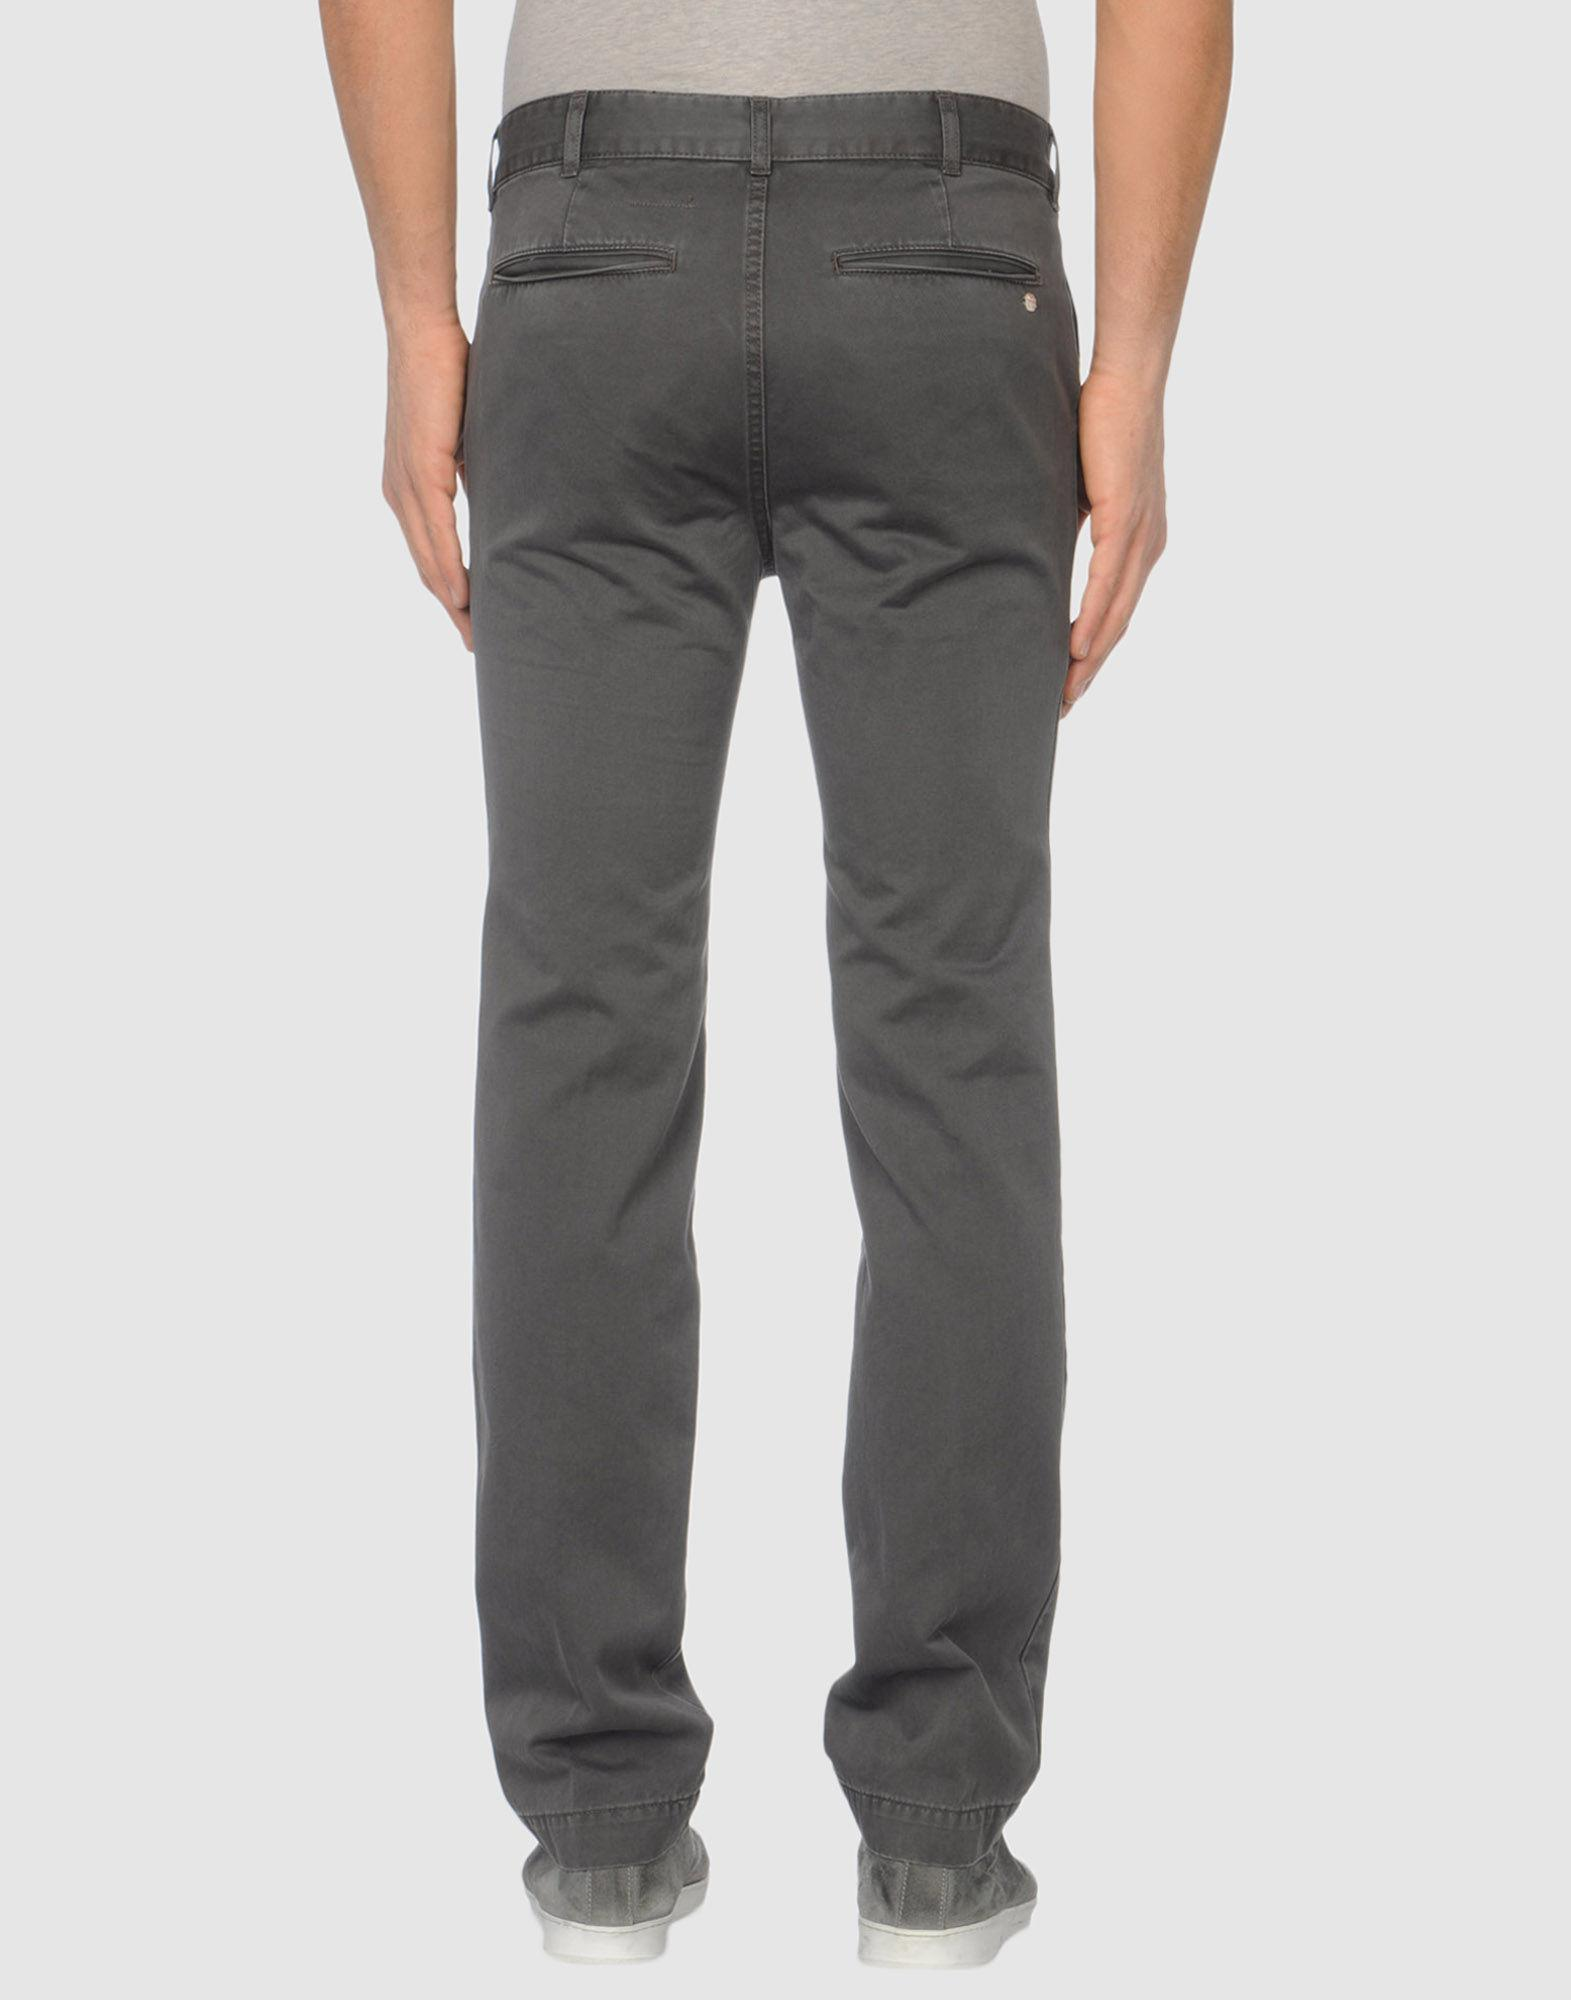 Mauro Grifoni Cotton Casual Trouser in Grey (Grey) for Men